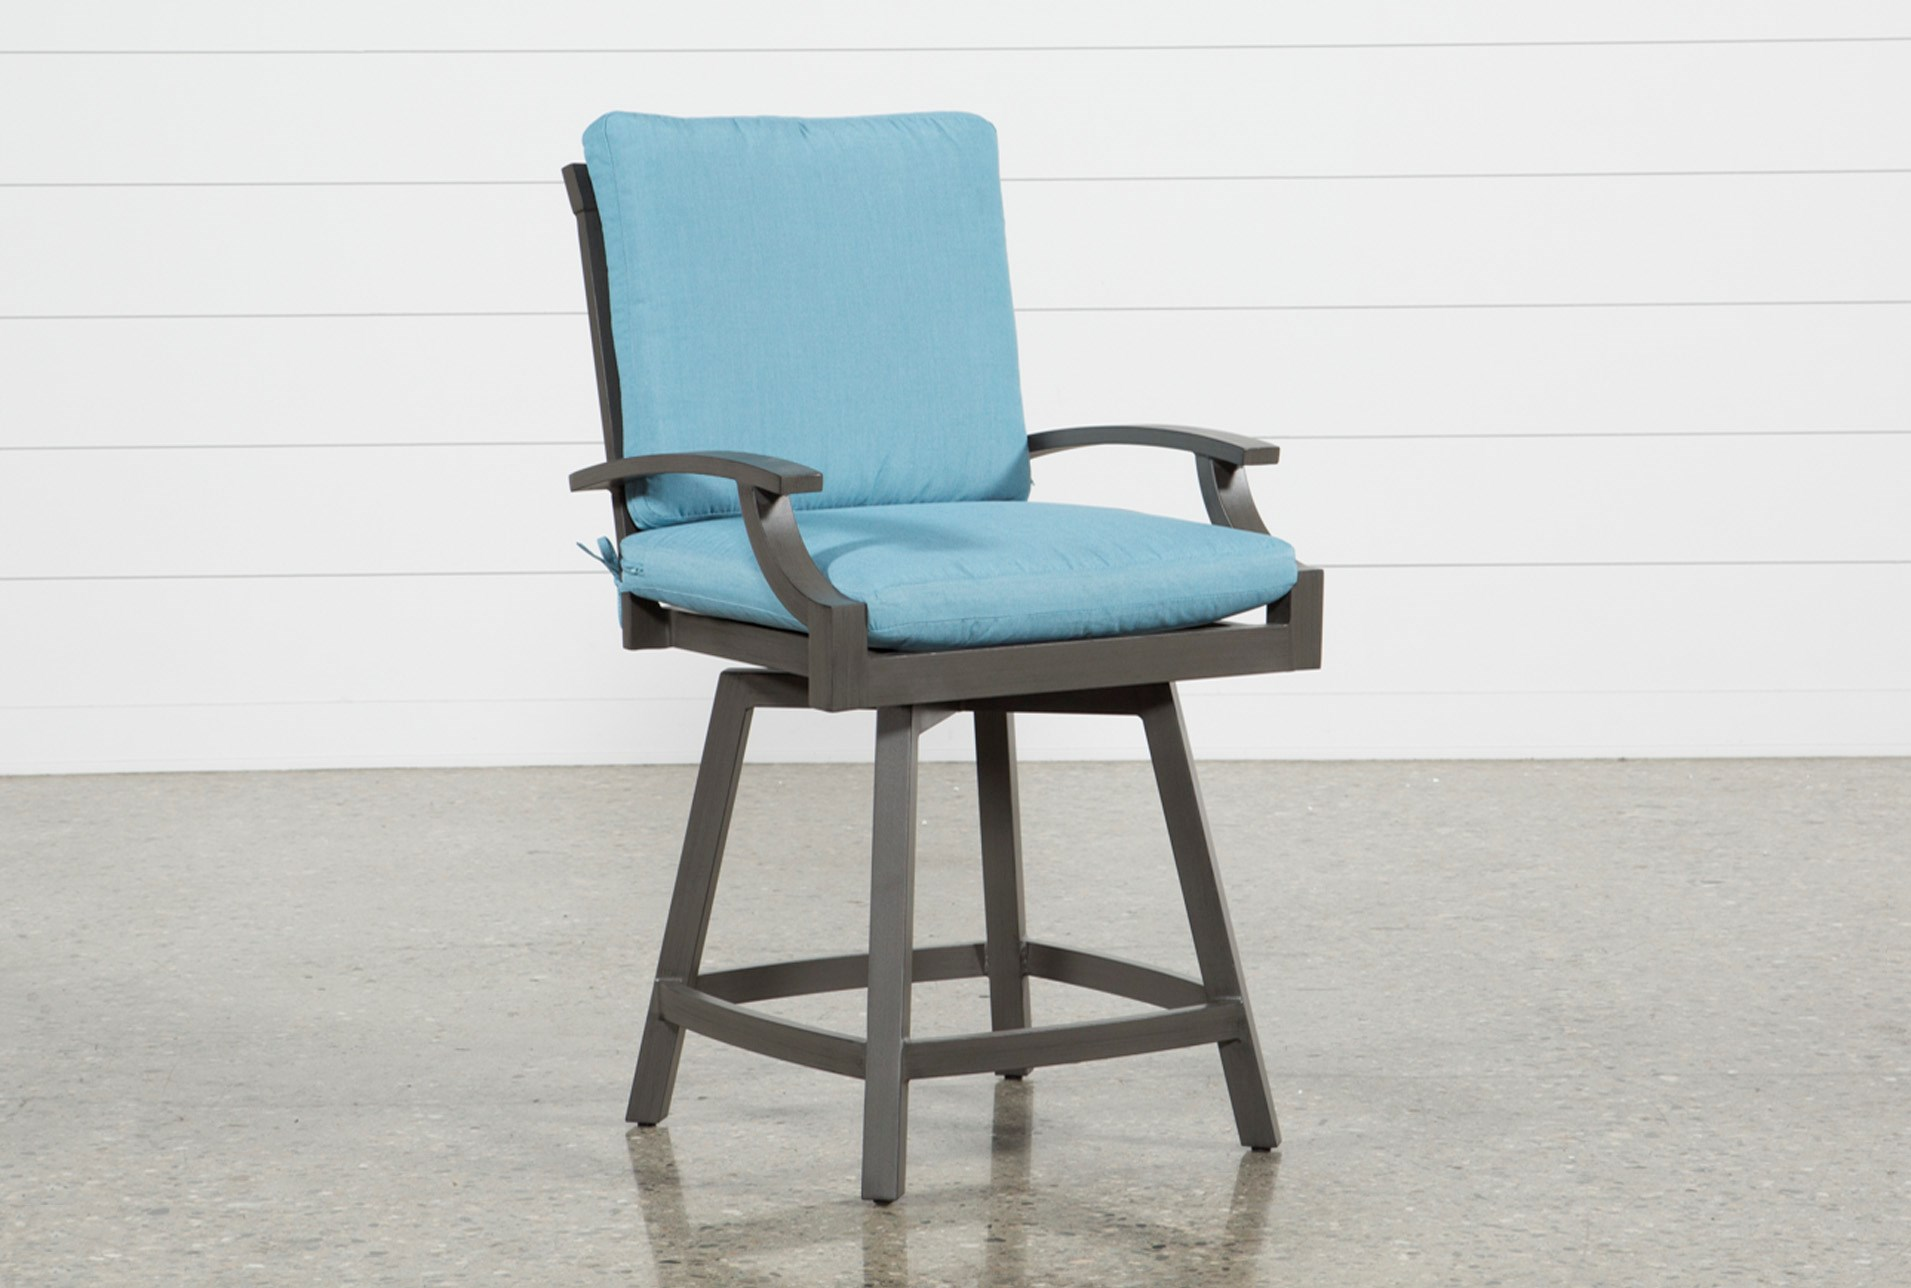 Outdoor Martinique Ii Aqua Swivel Counter Stool Qty 1 Has Been Successfully Added To Your Cart